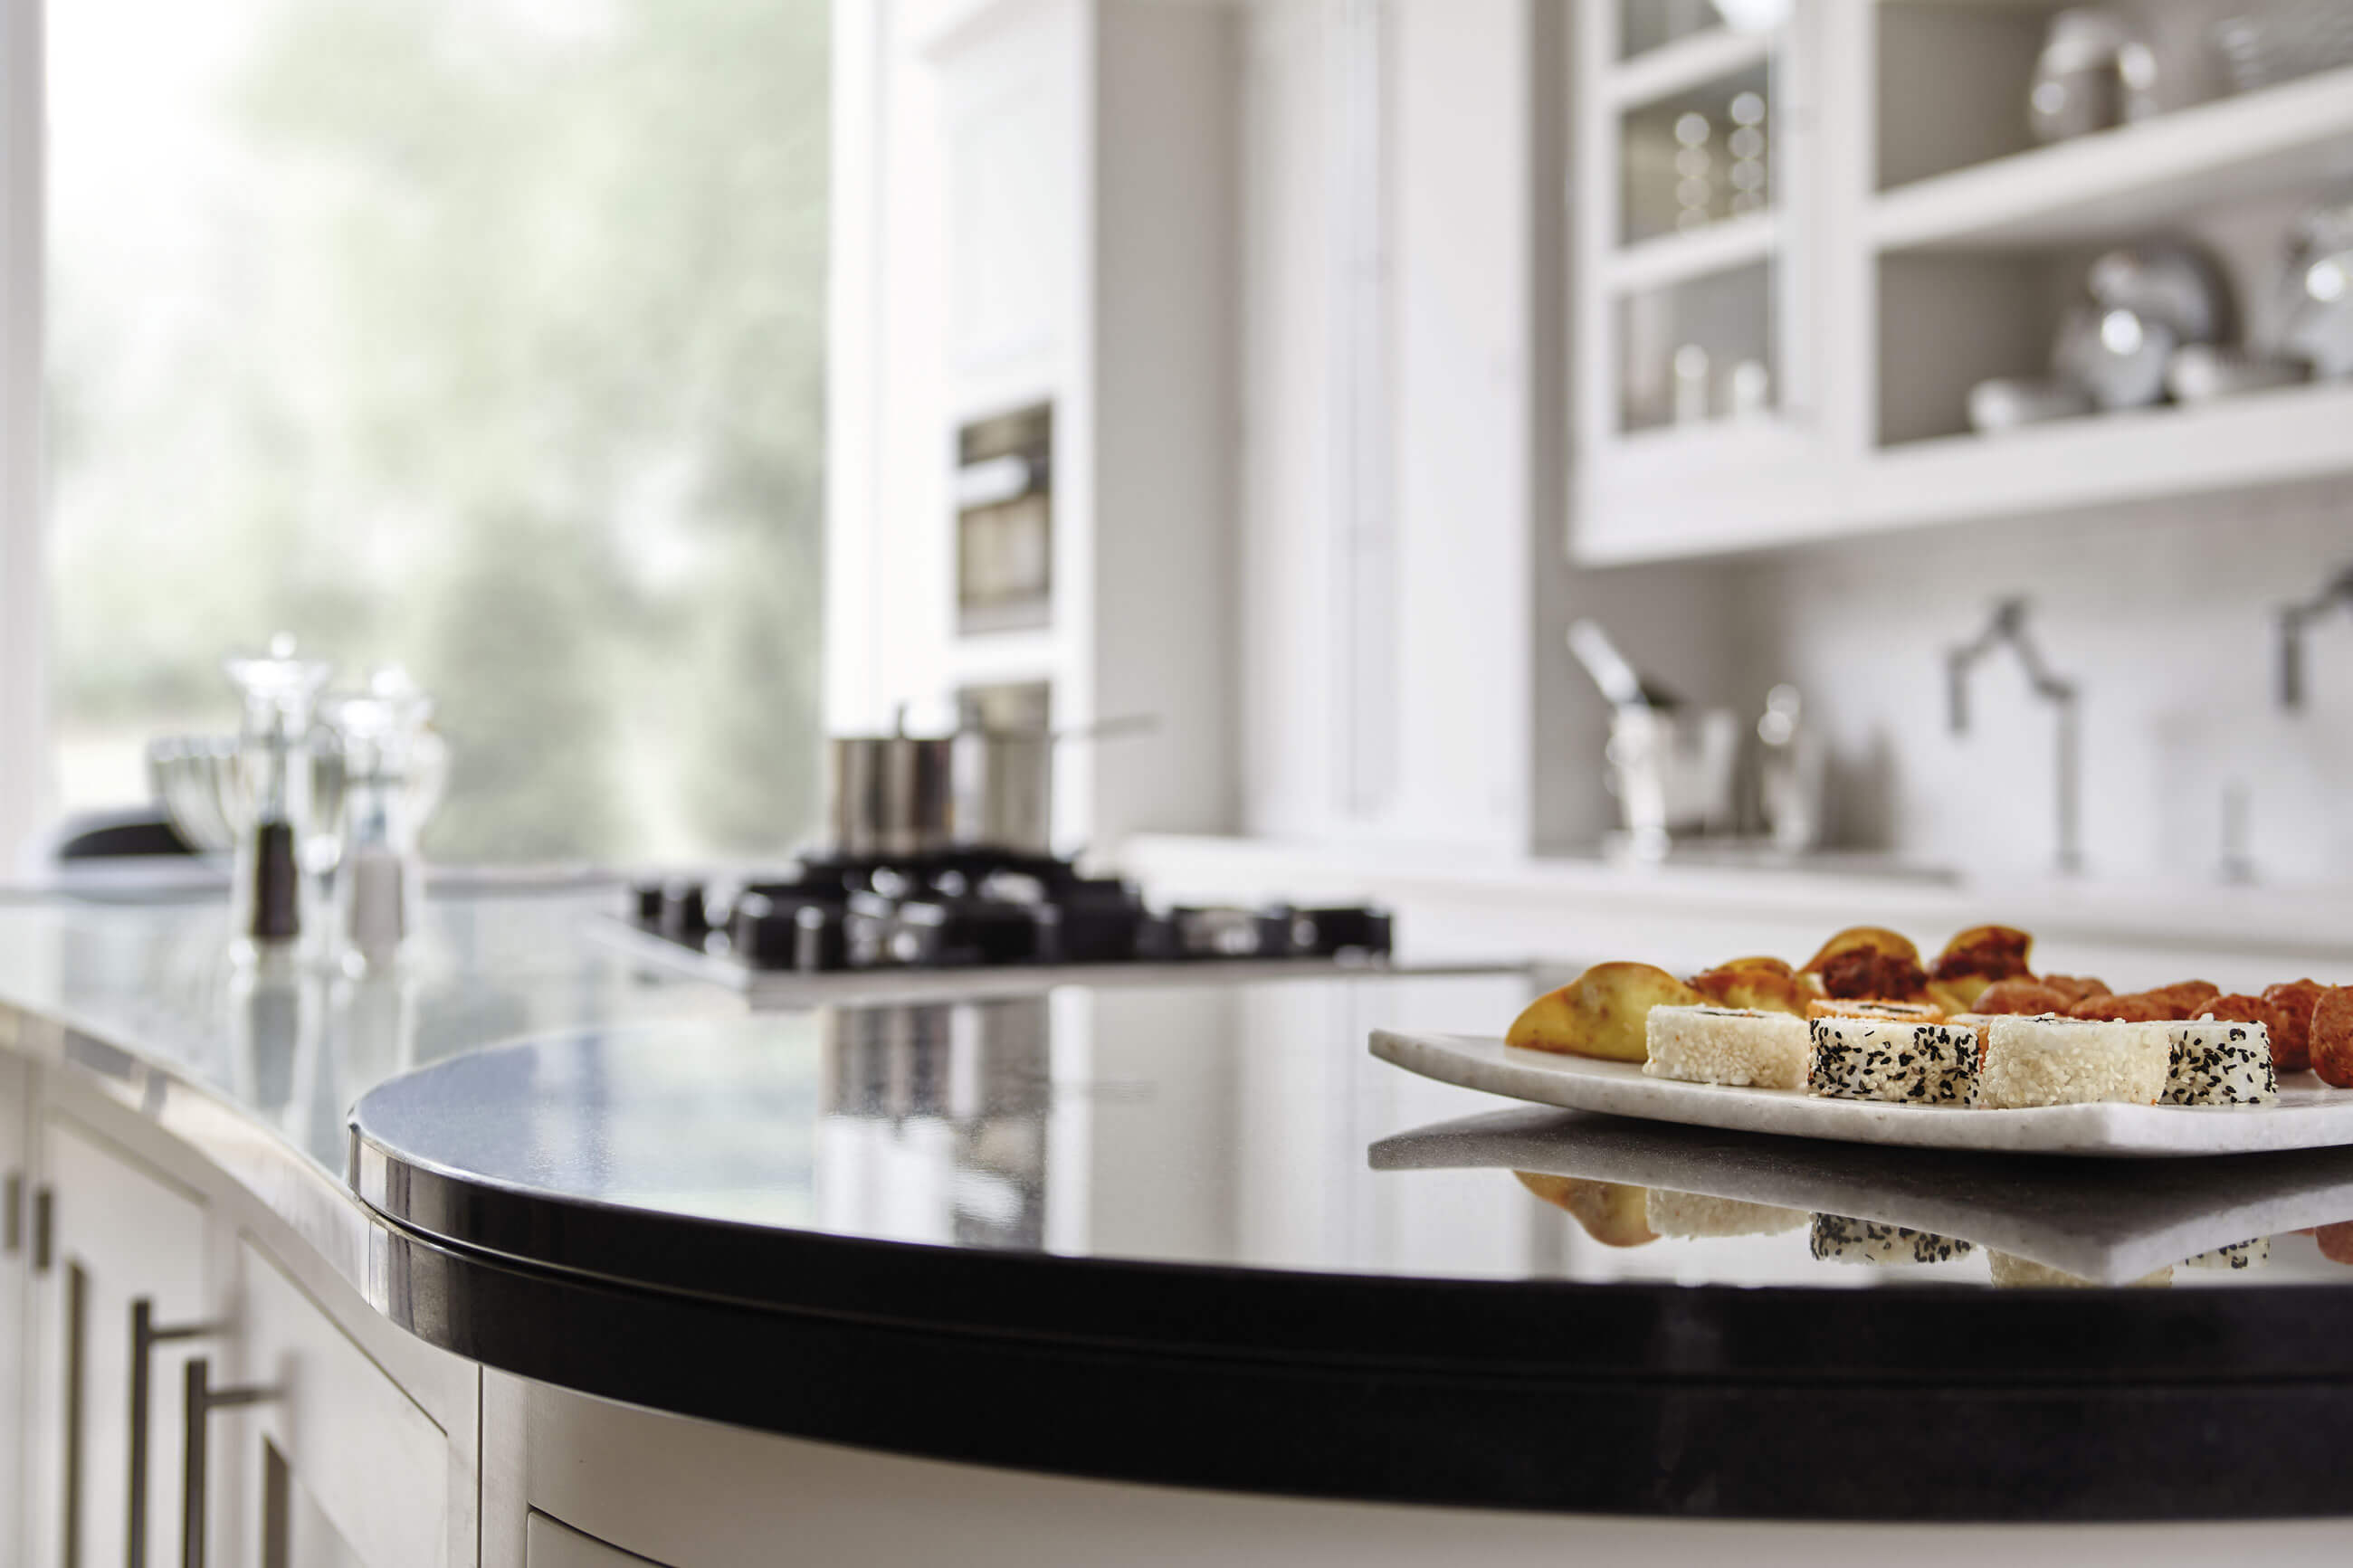 U201cThe Smooth, Clean Lines Of The Harrington Kitchen Collection Makes It  Possible For Us To Play With Different Shapes For The Design, Resulting In  This ...